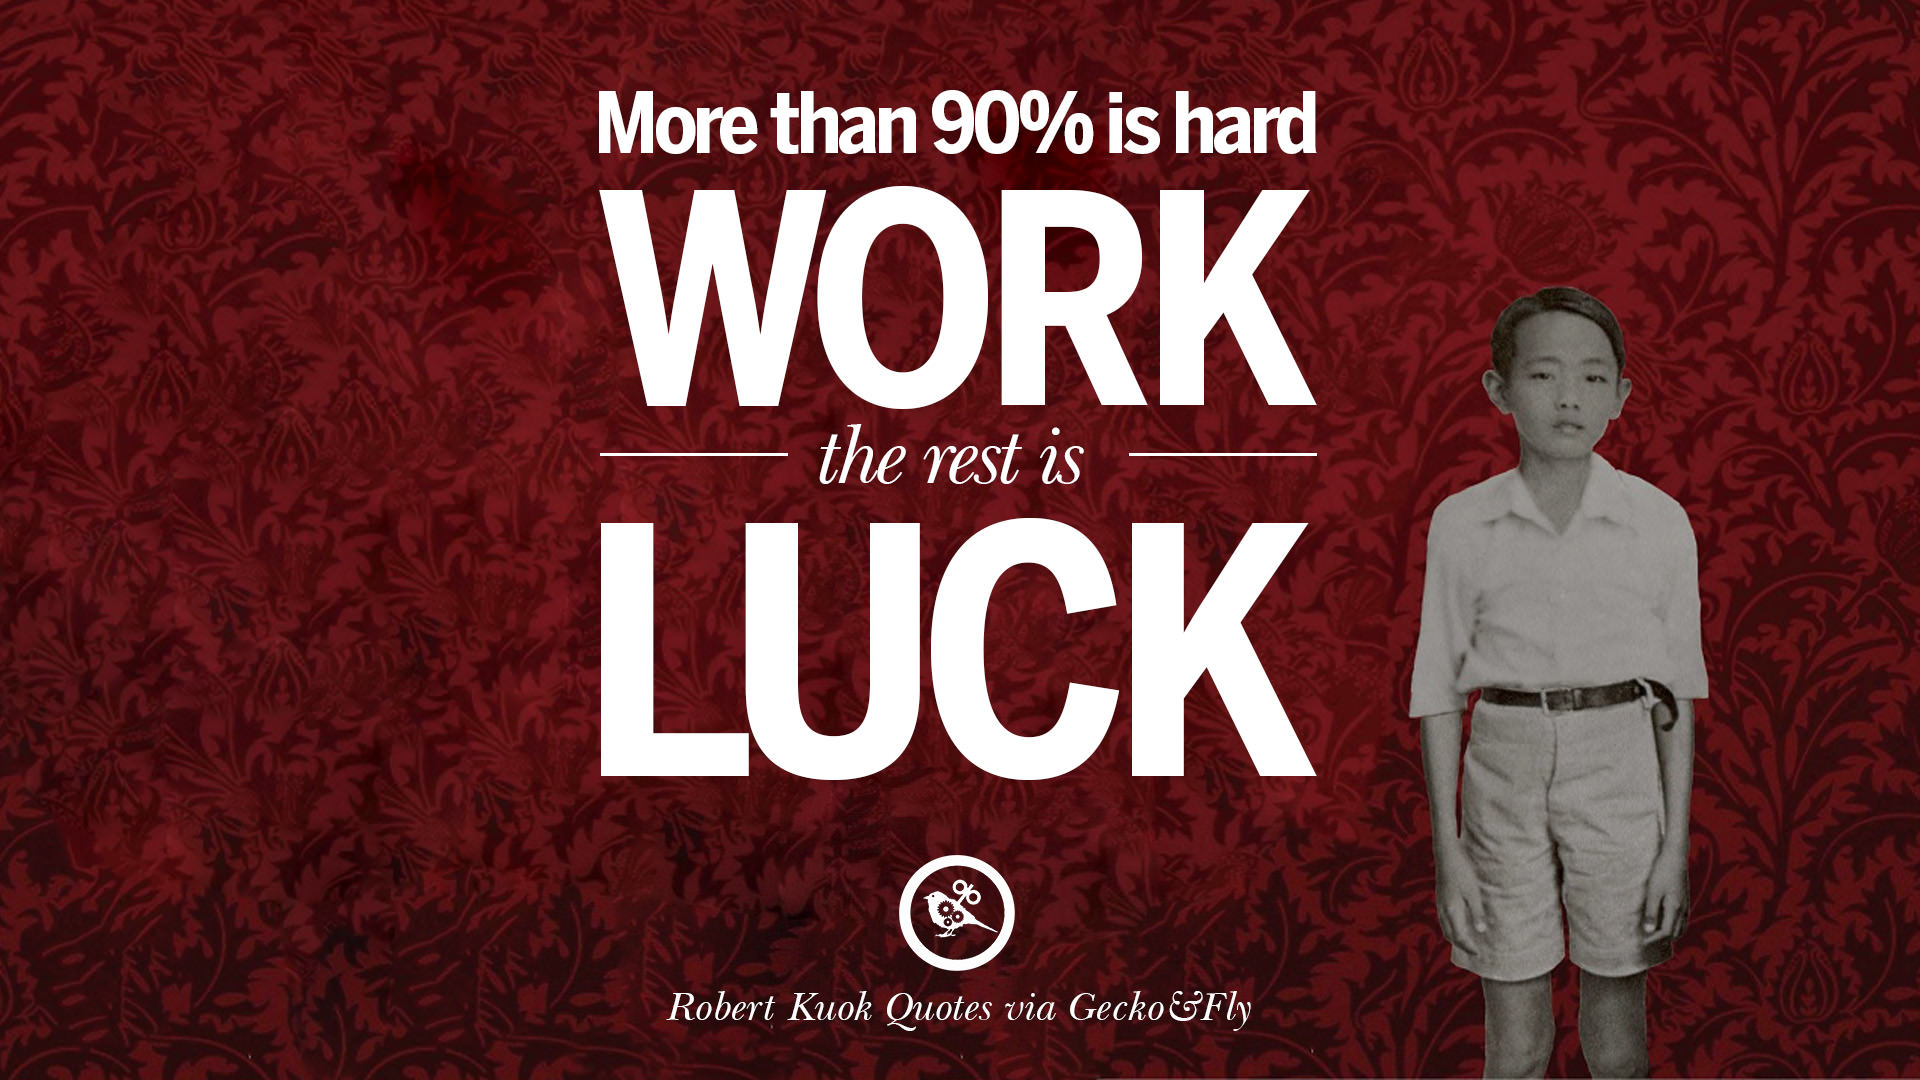 how to do hard work to get success